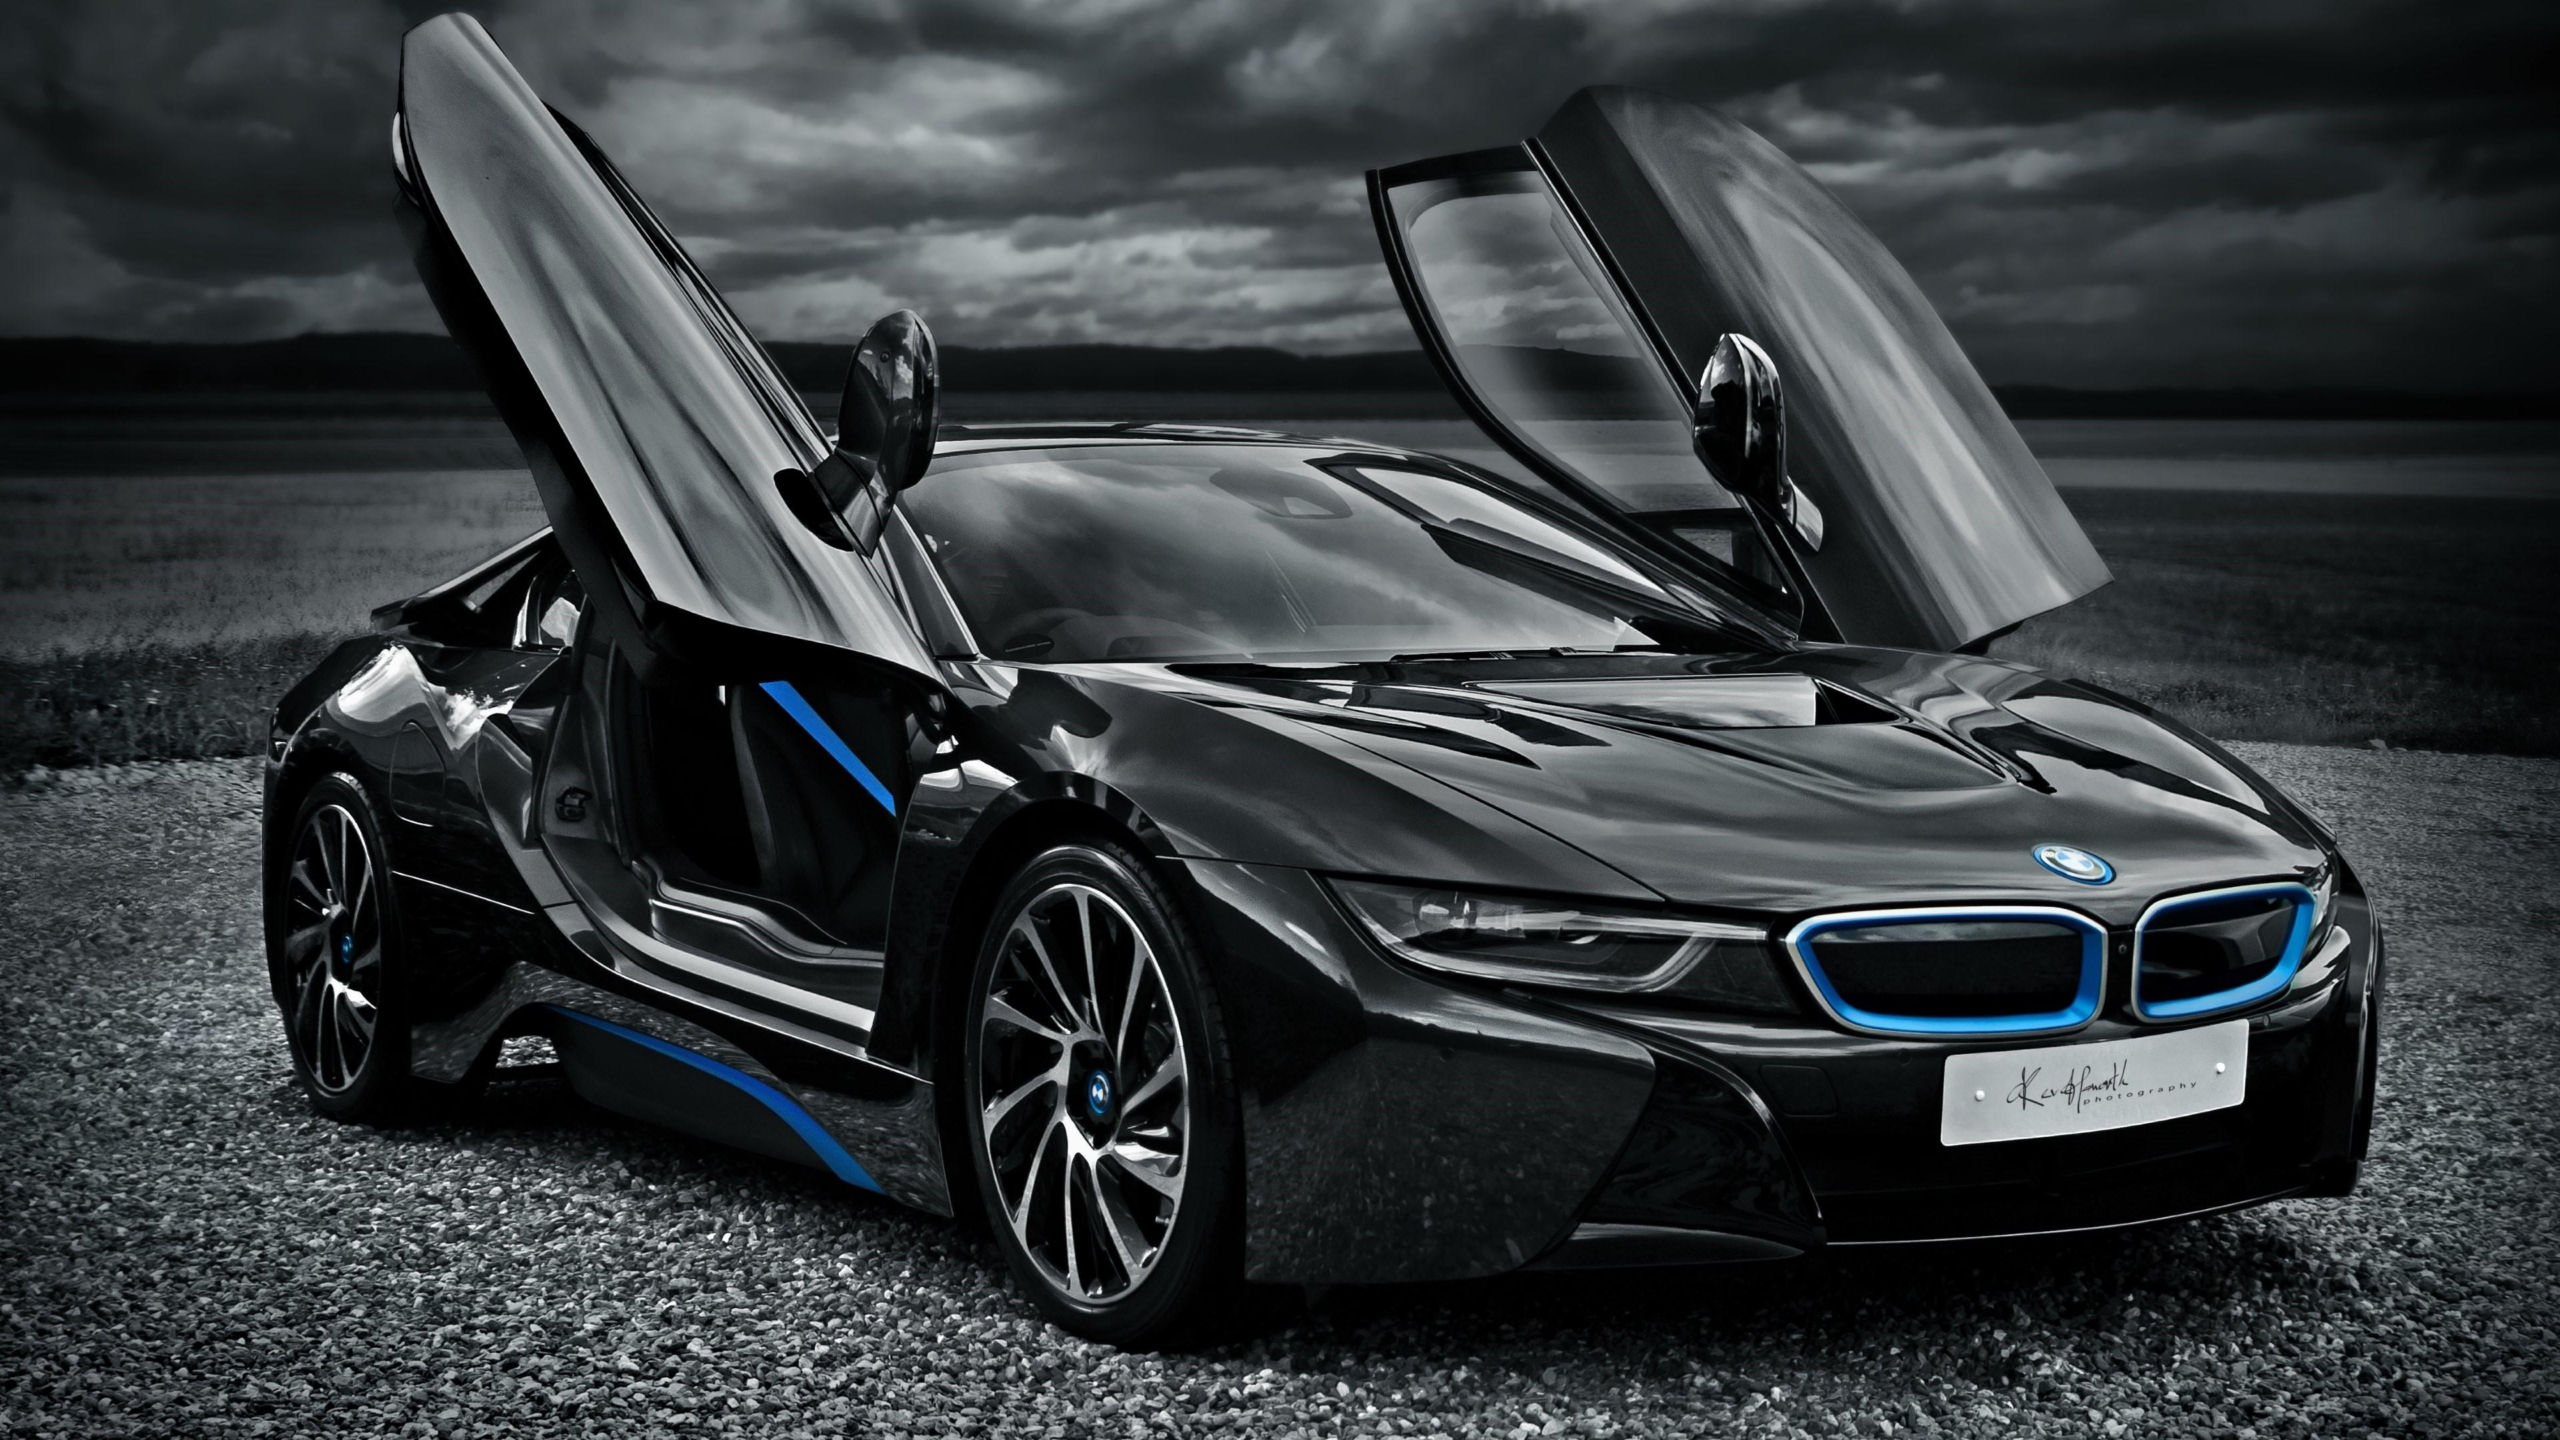 BMW i8 Wallpaper – Best wallpapers For Your Computer